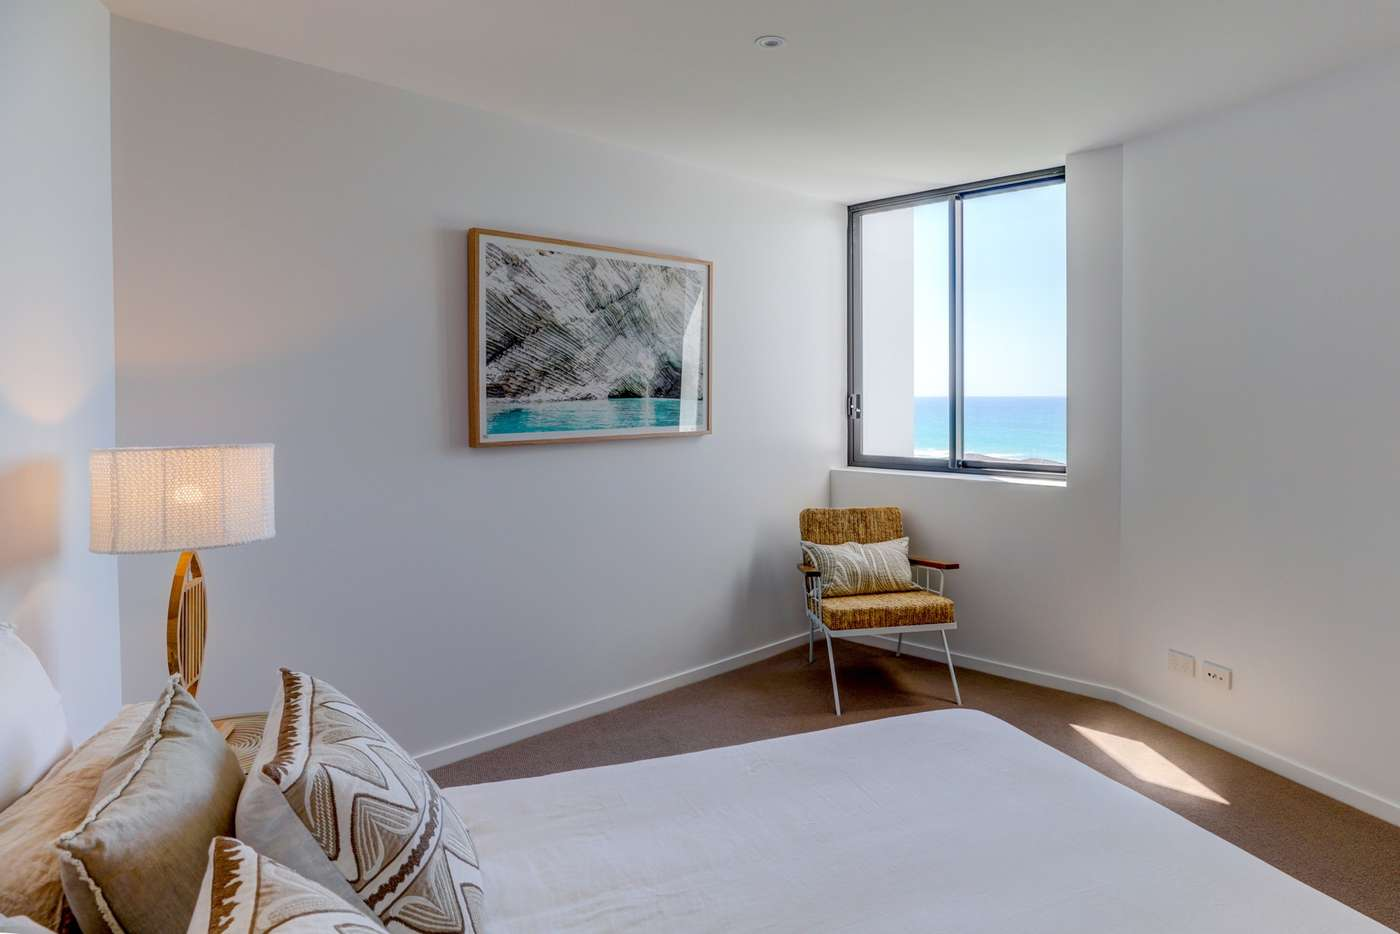 Seventh view of Homely apartment listing, 505/60 Jefferson Lane, Palm Beach QLD 4221